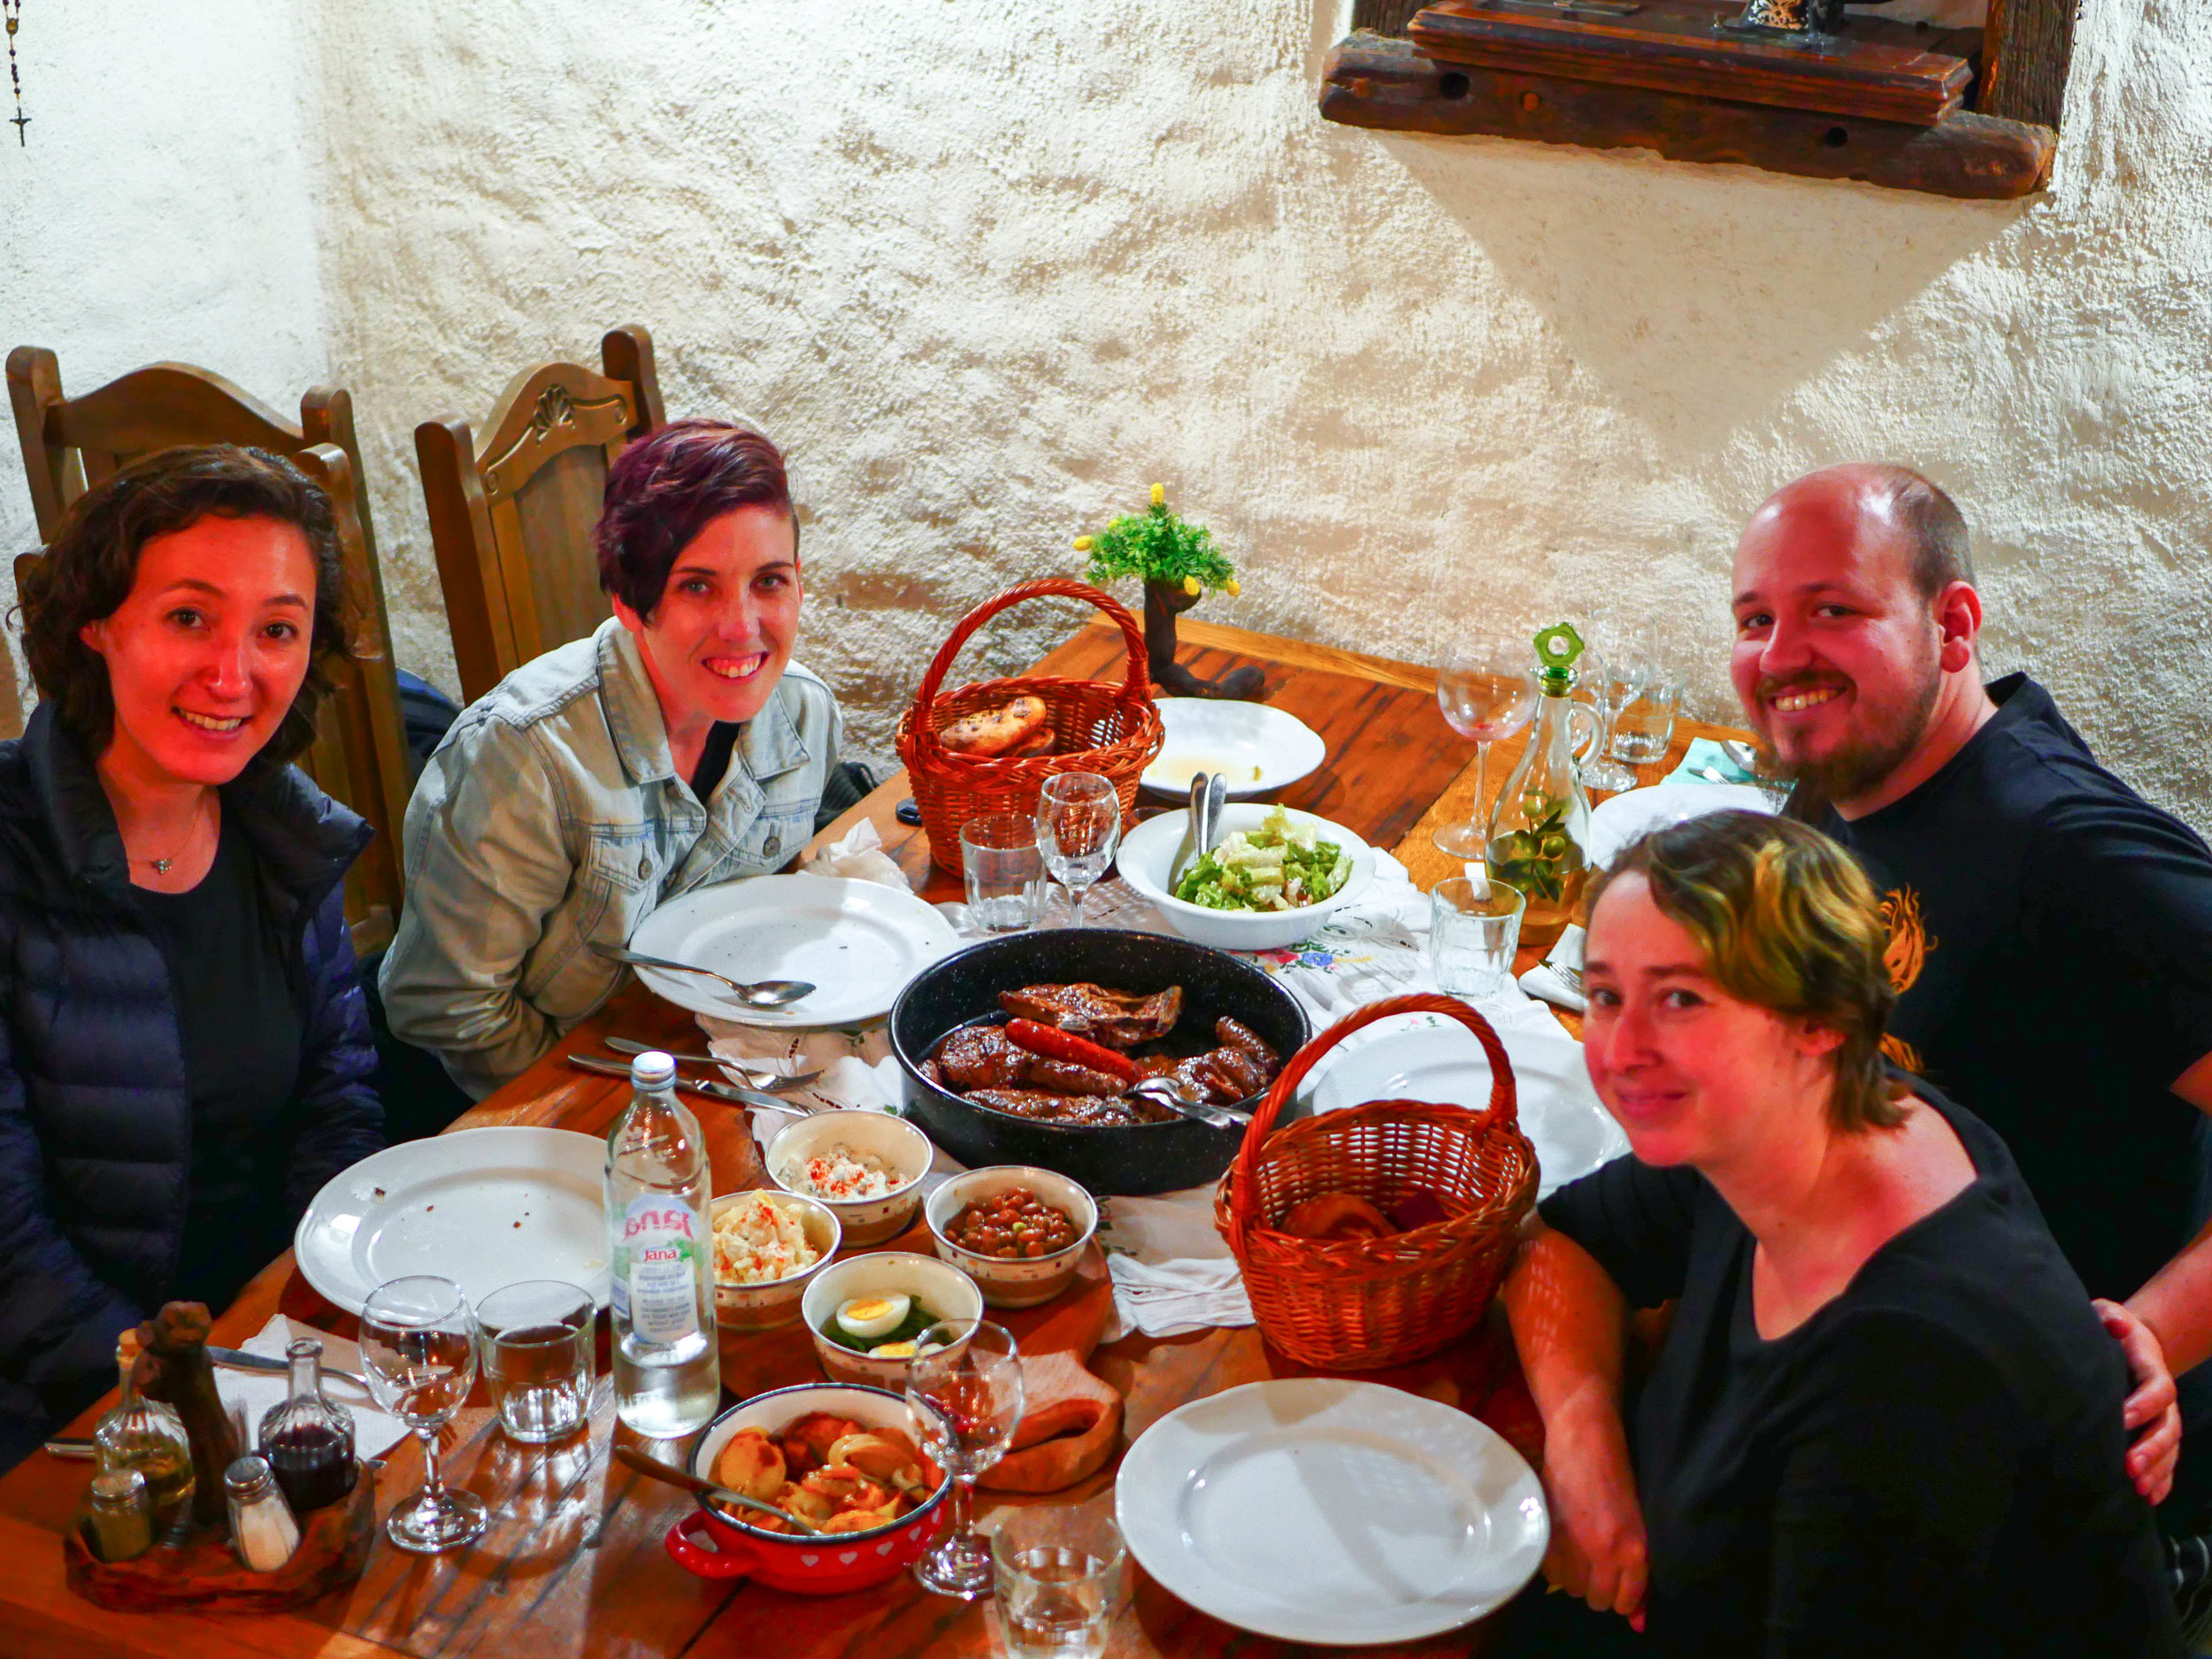 The four of us enjoying an amazing meal at Roca Estate in Croatia. Something I would have never done alone.